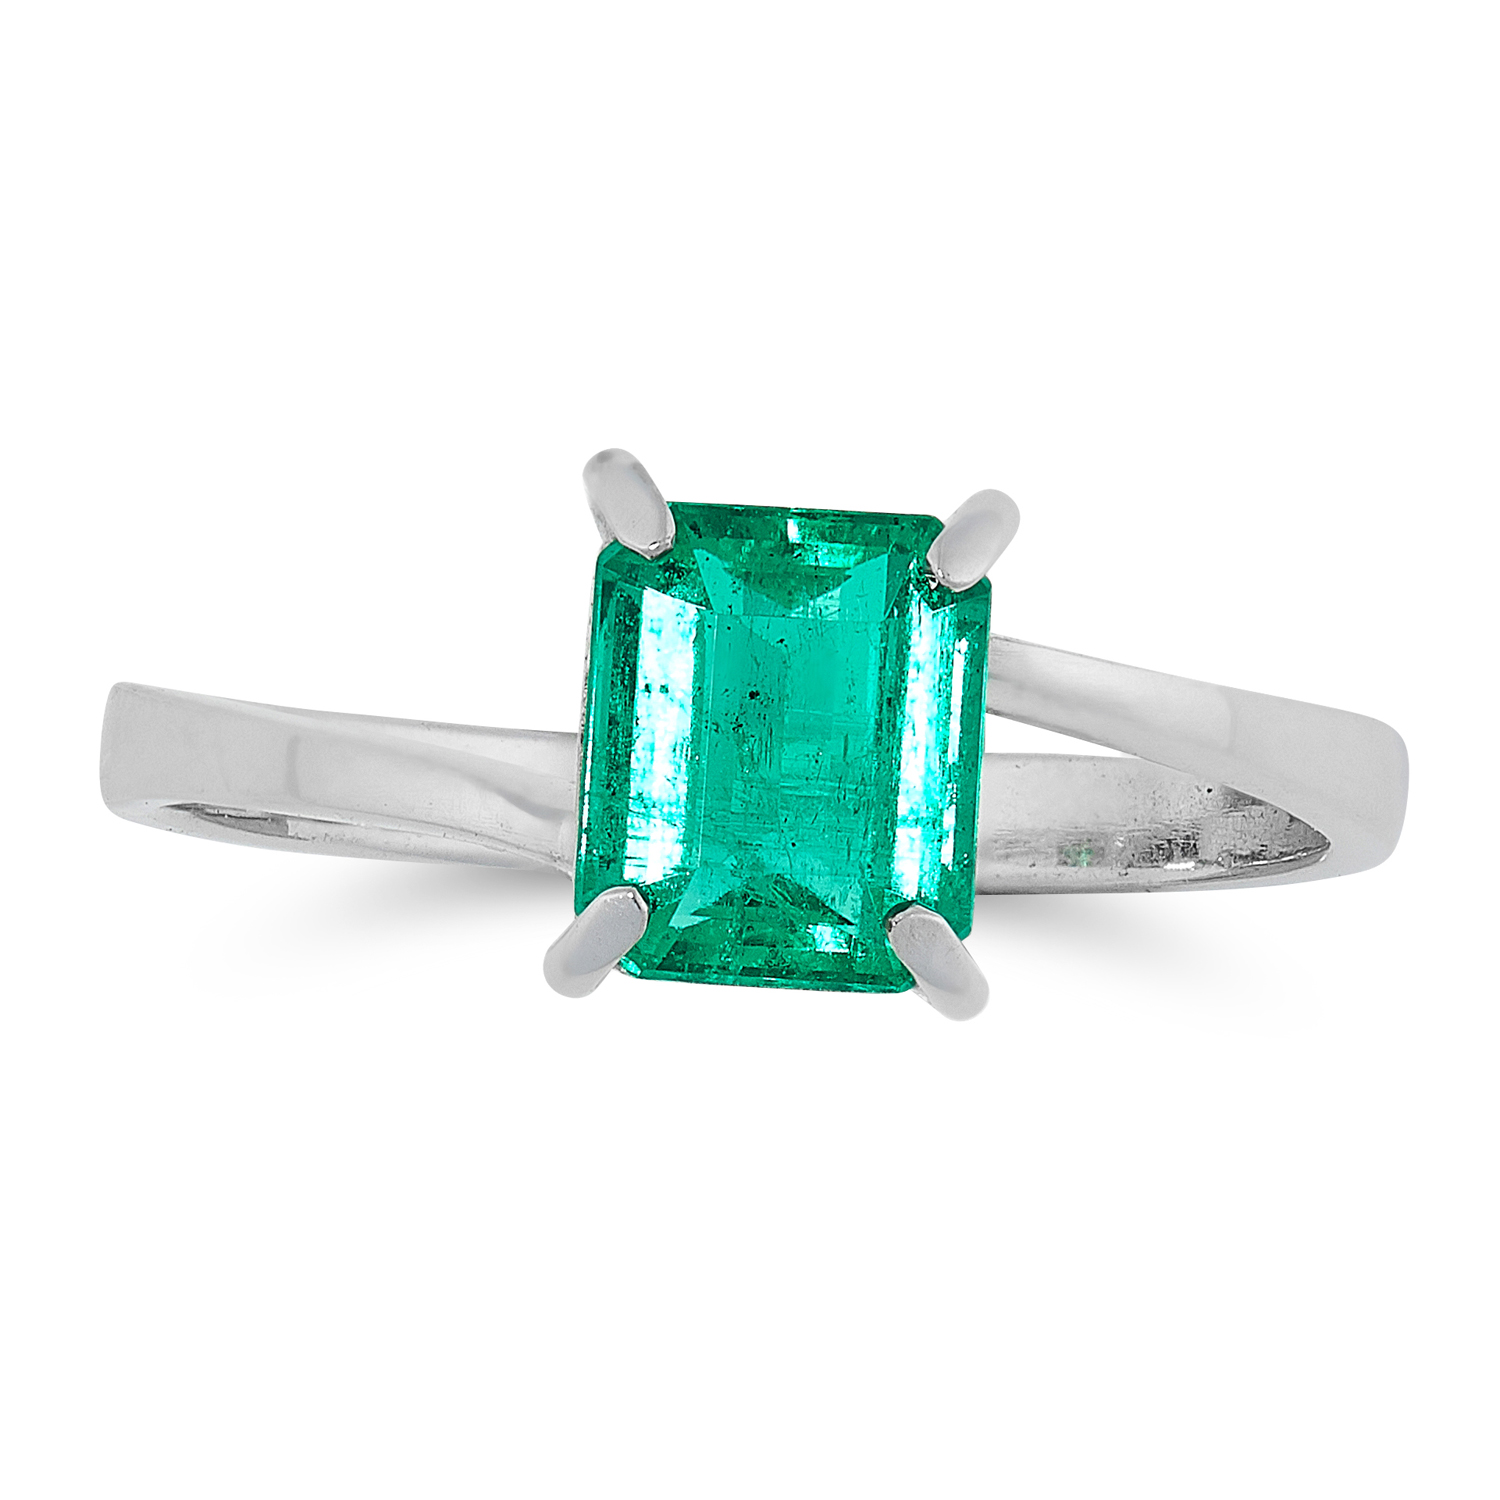 A COLOMBIAN EMERALD RING set with a single emerald